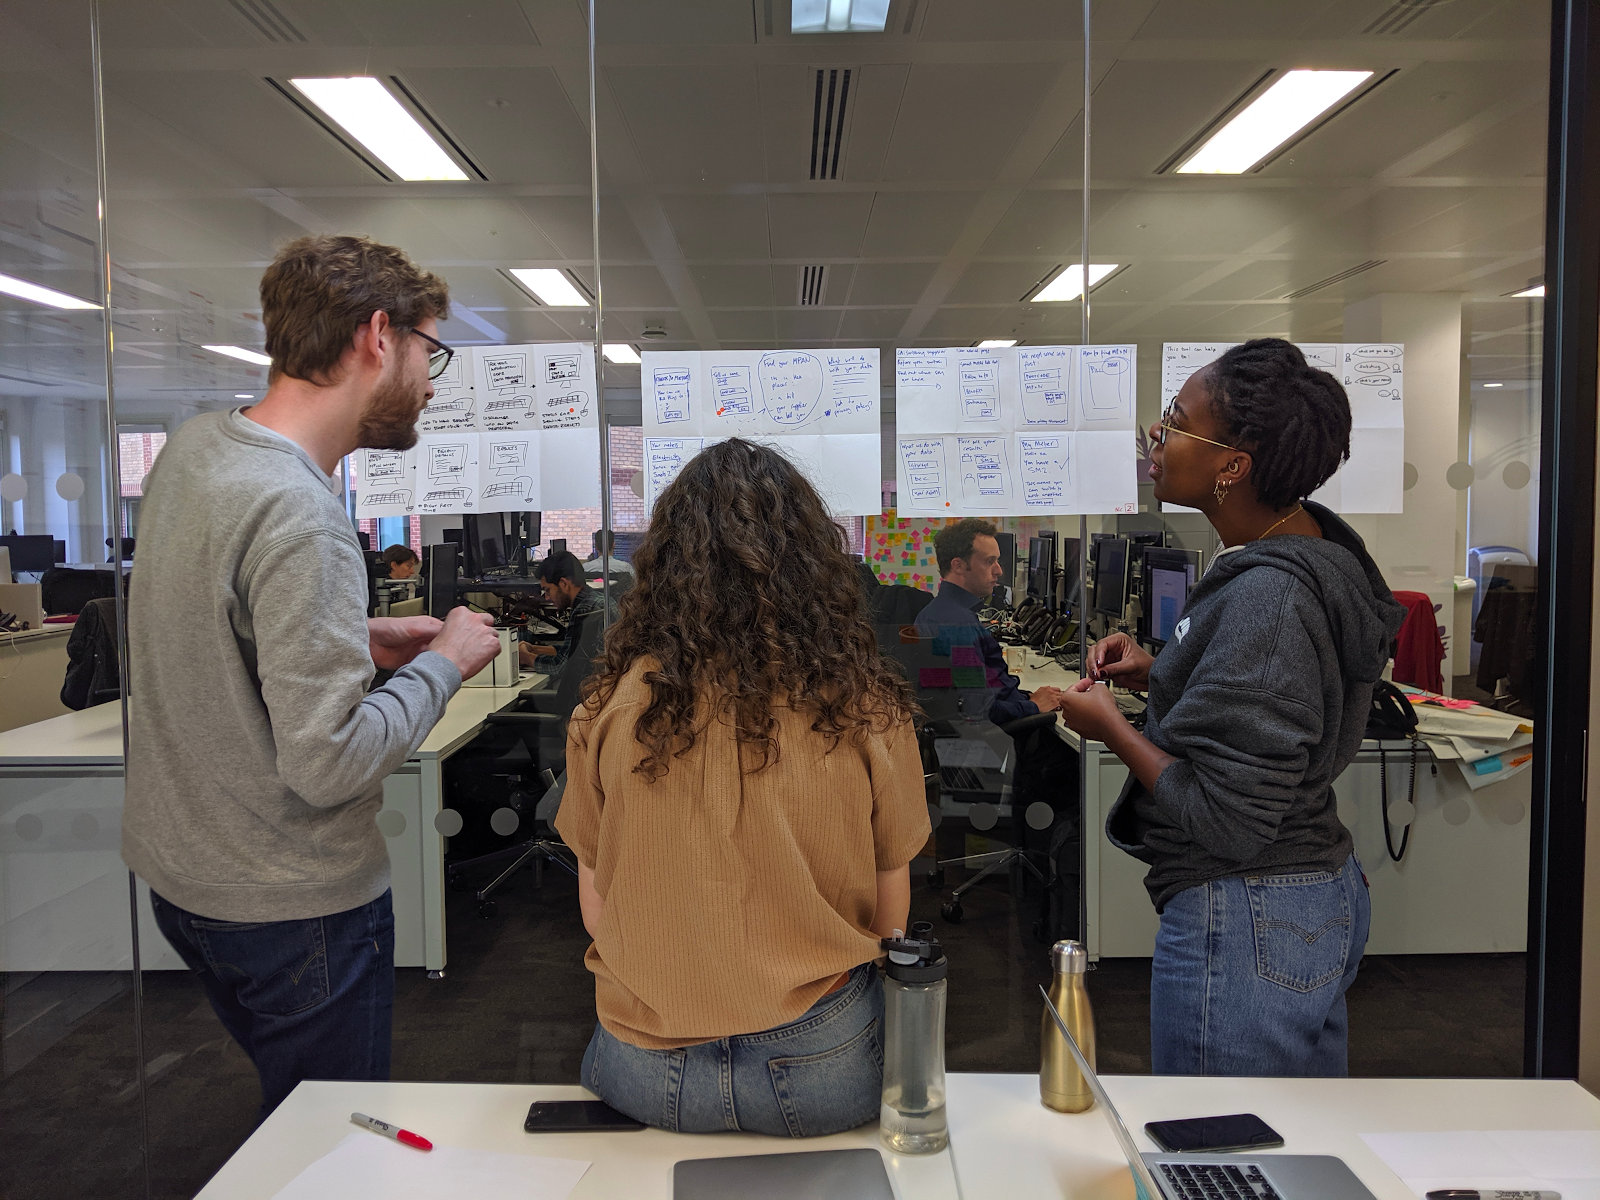 Three people in an office, looking at pages of work together